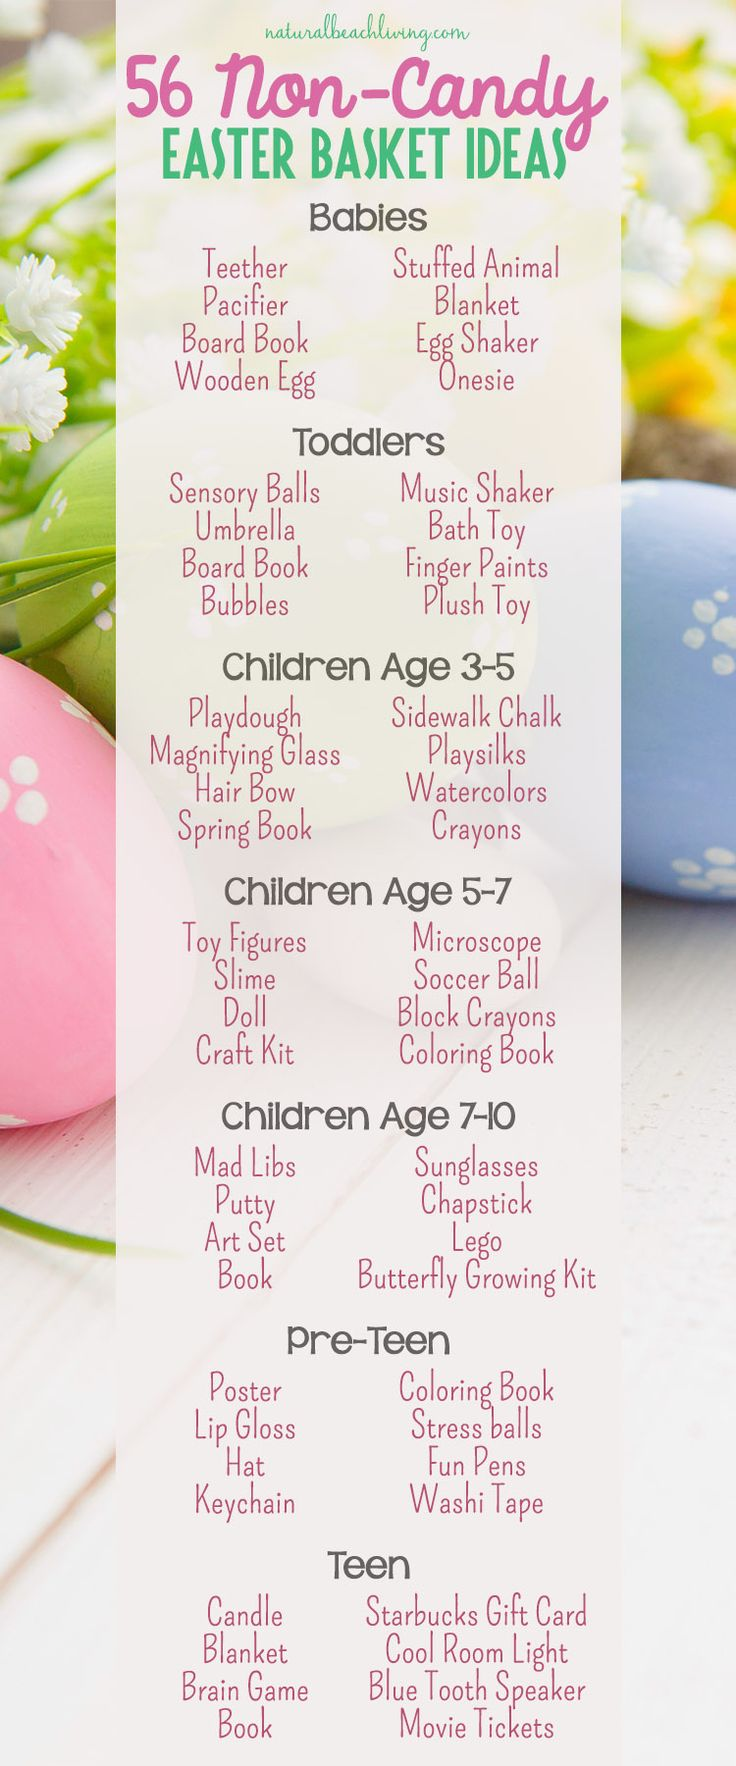 488 best easter recipes crafts education images on pinterest 56 non candy easter basket ideas for kids negle Gallery